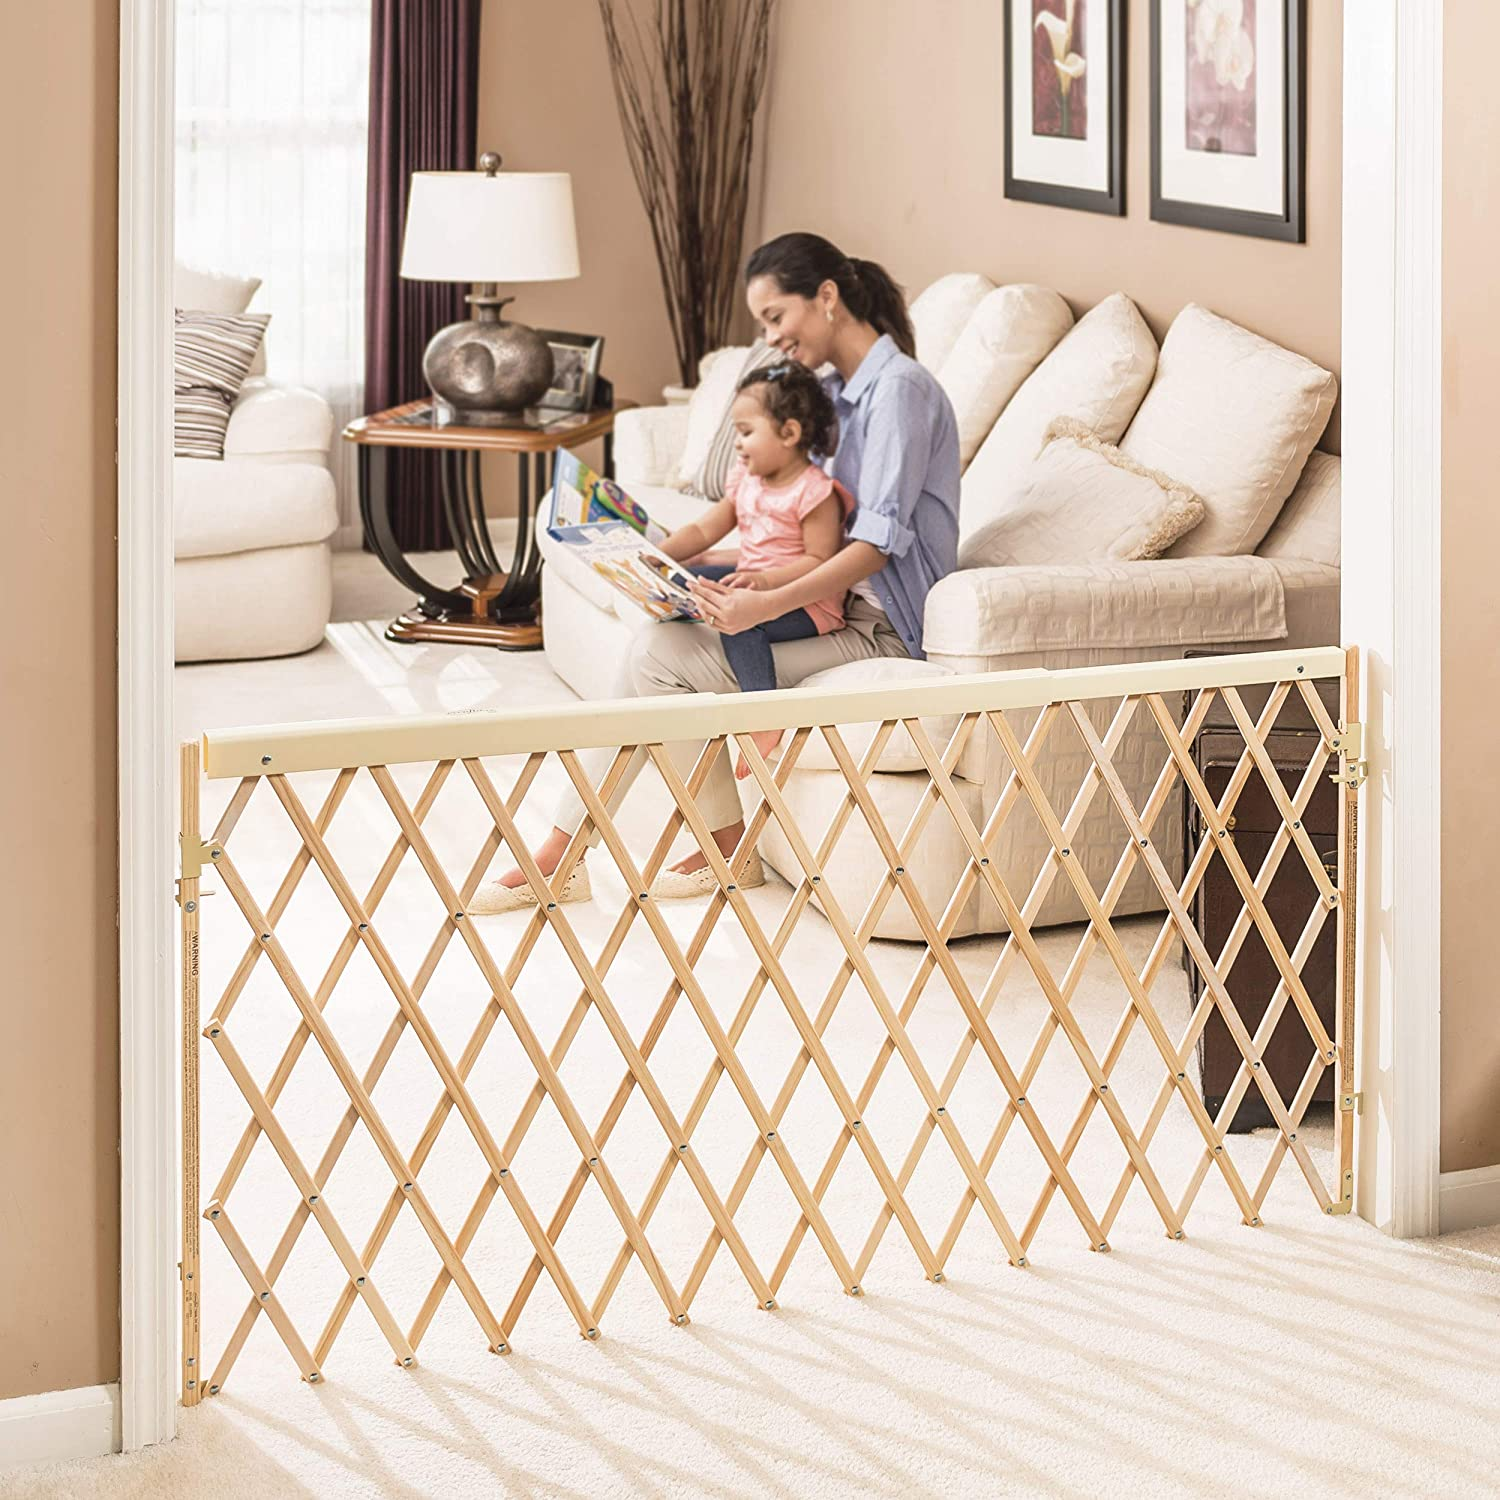 Evenflo Expansion Baby Gate Image